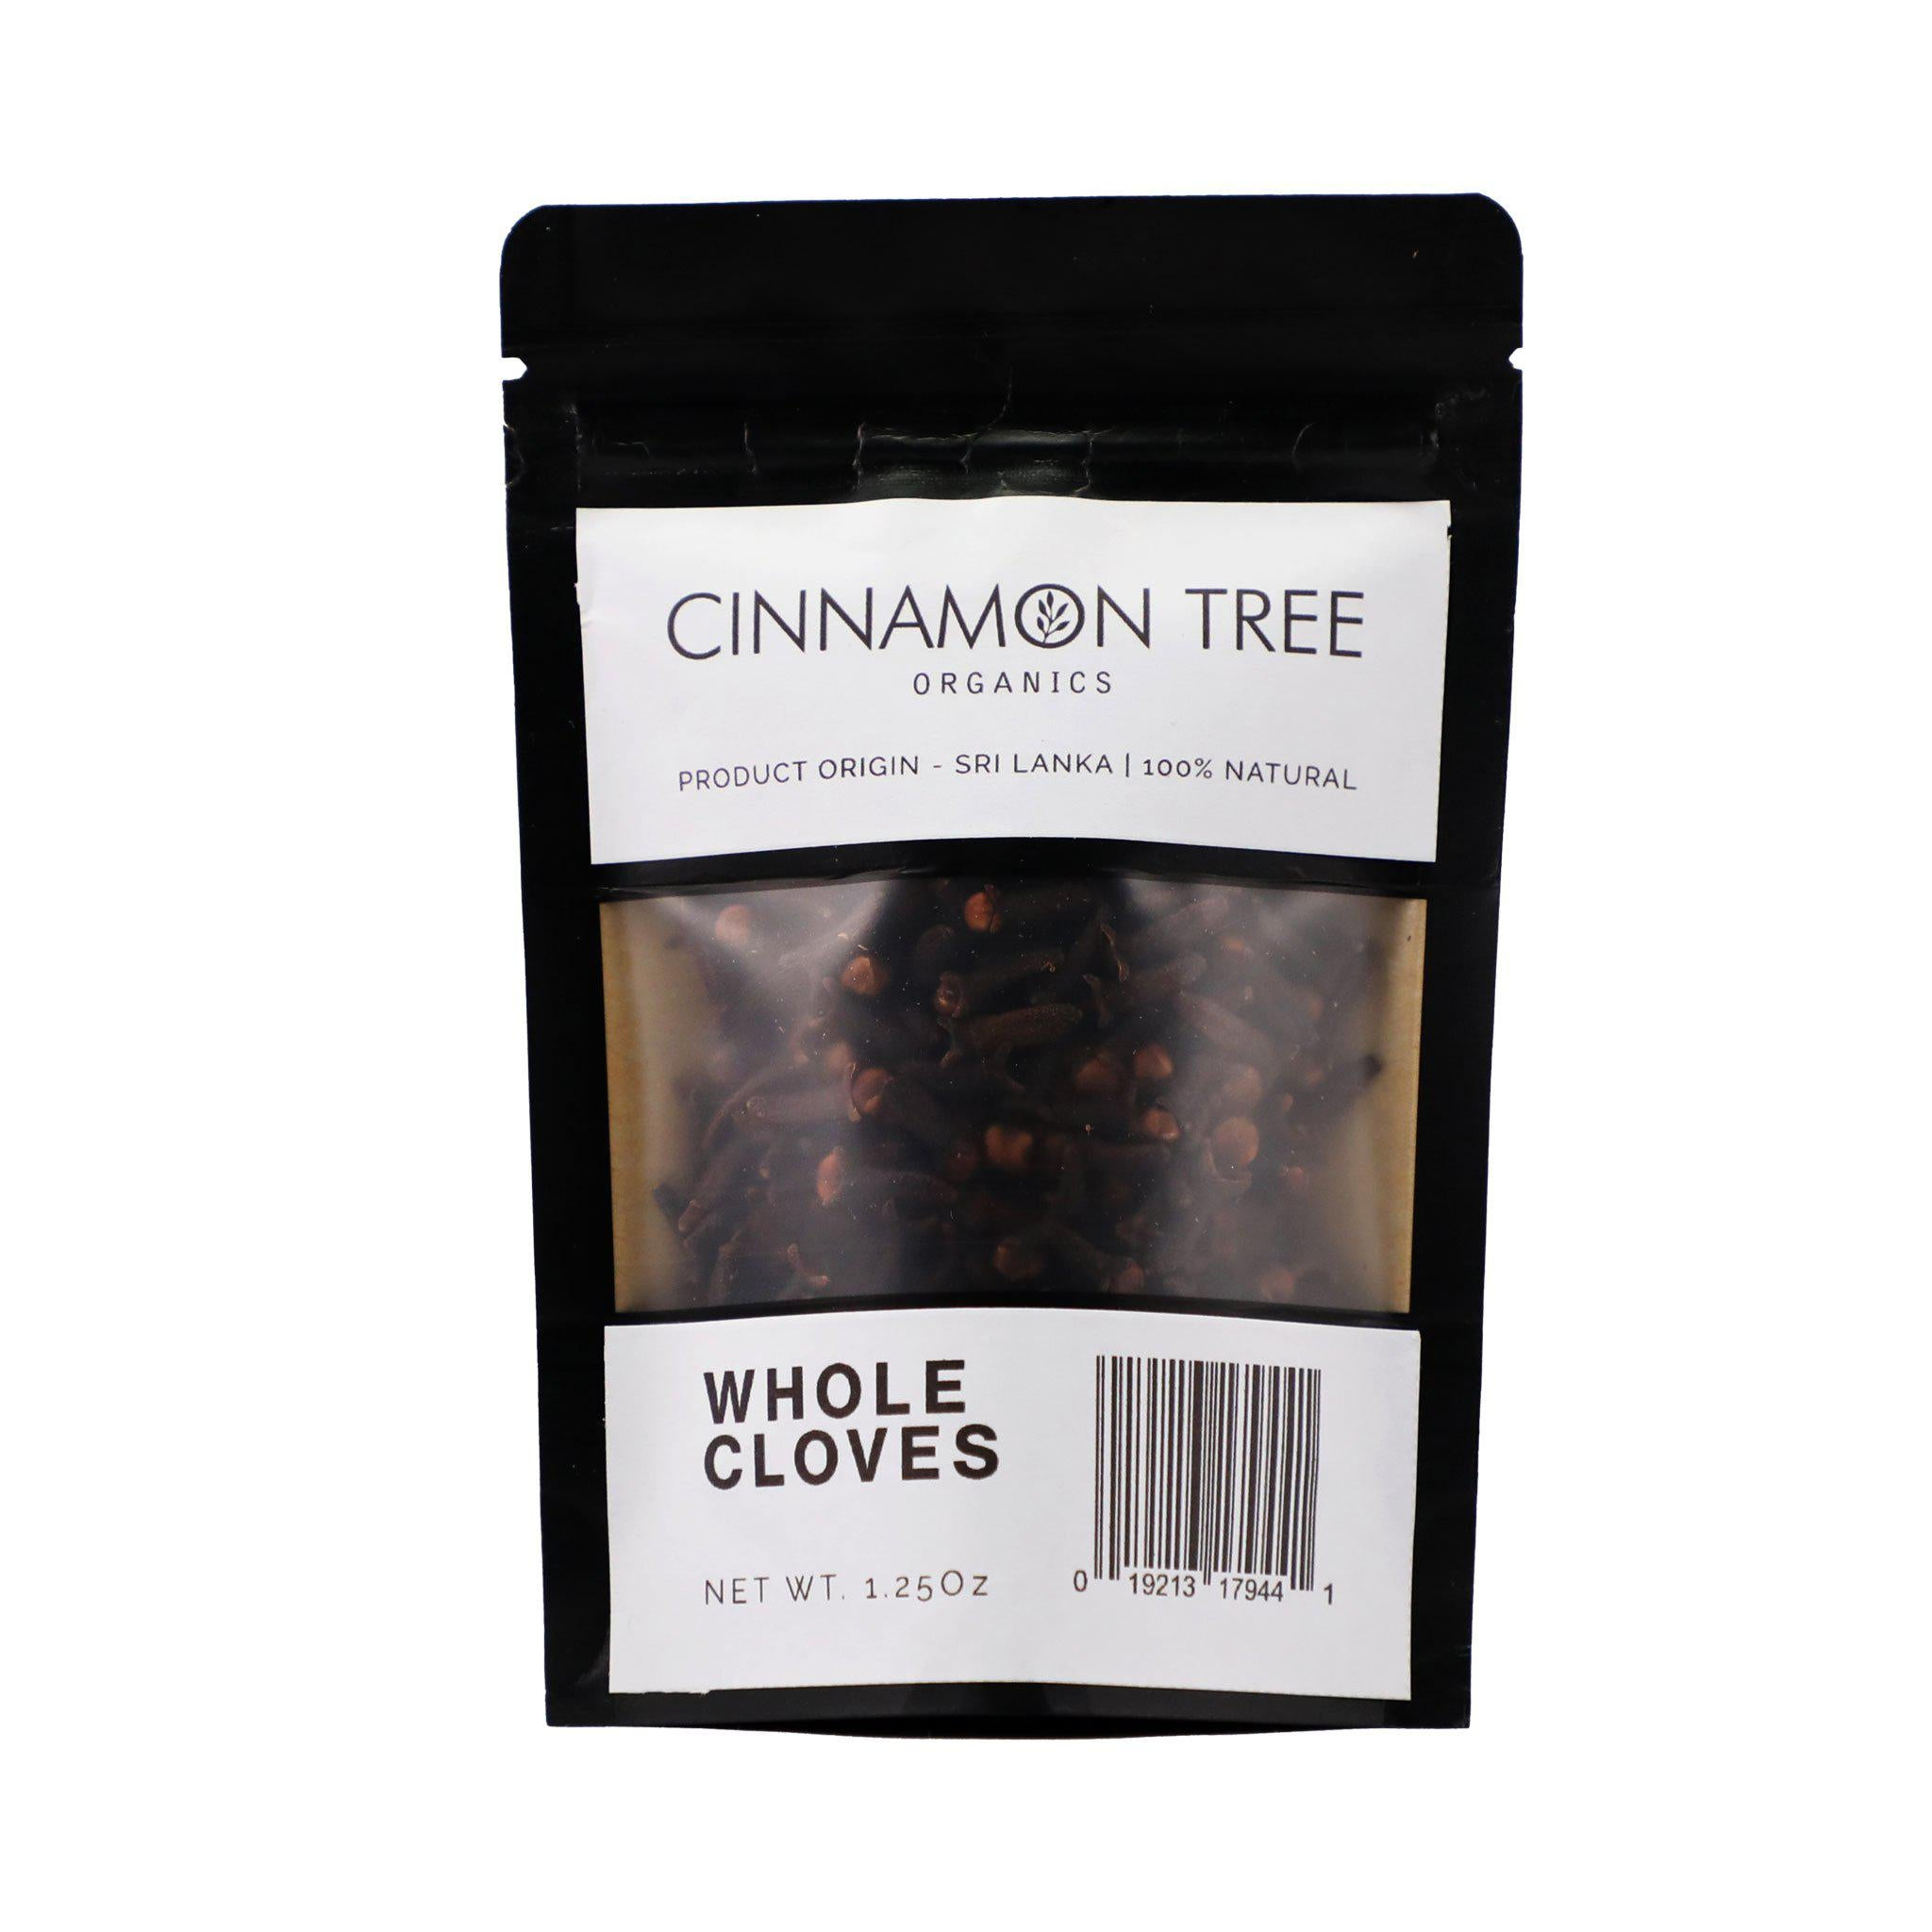 Cinnamon Tree Organics single origin whole cloves 1.25 Oz